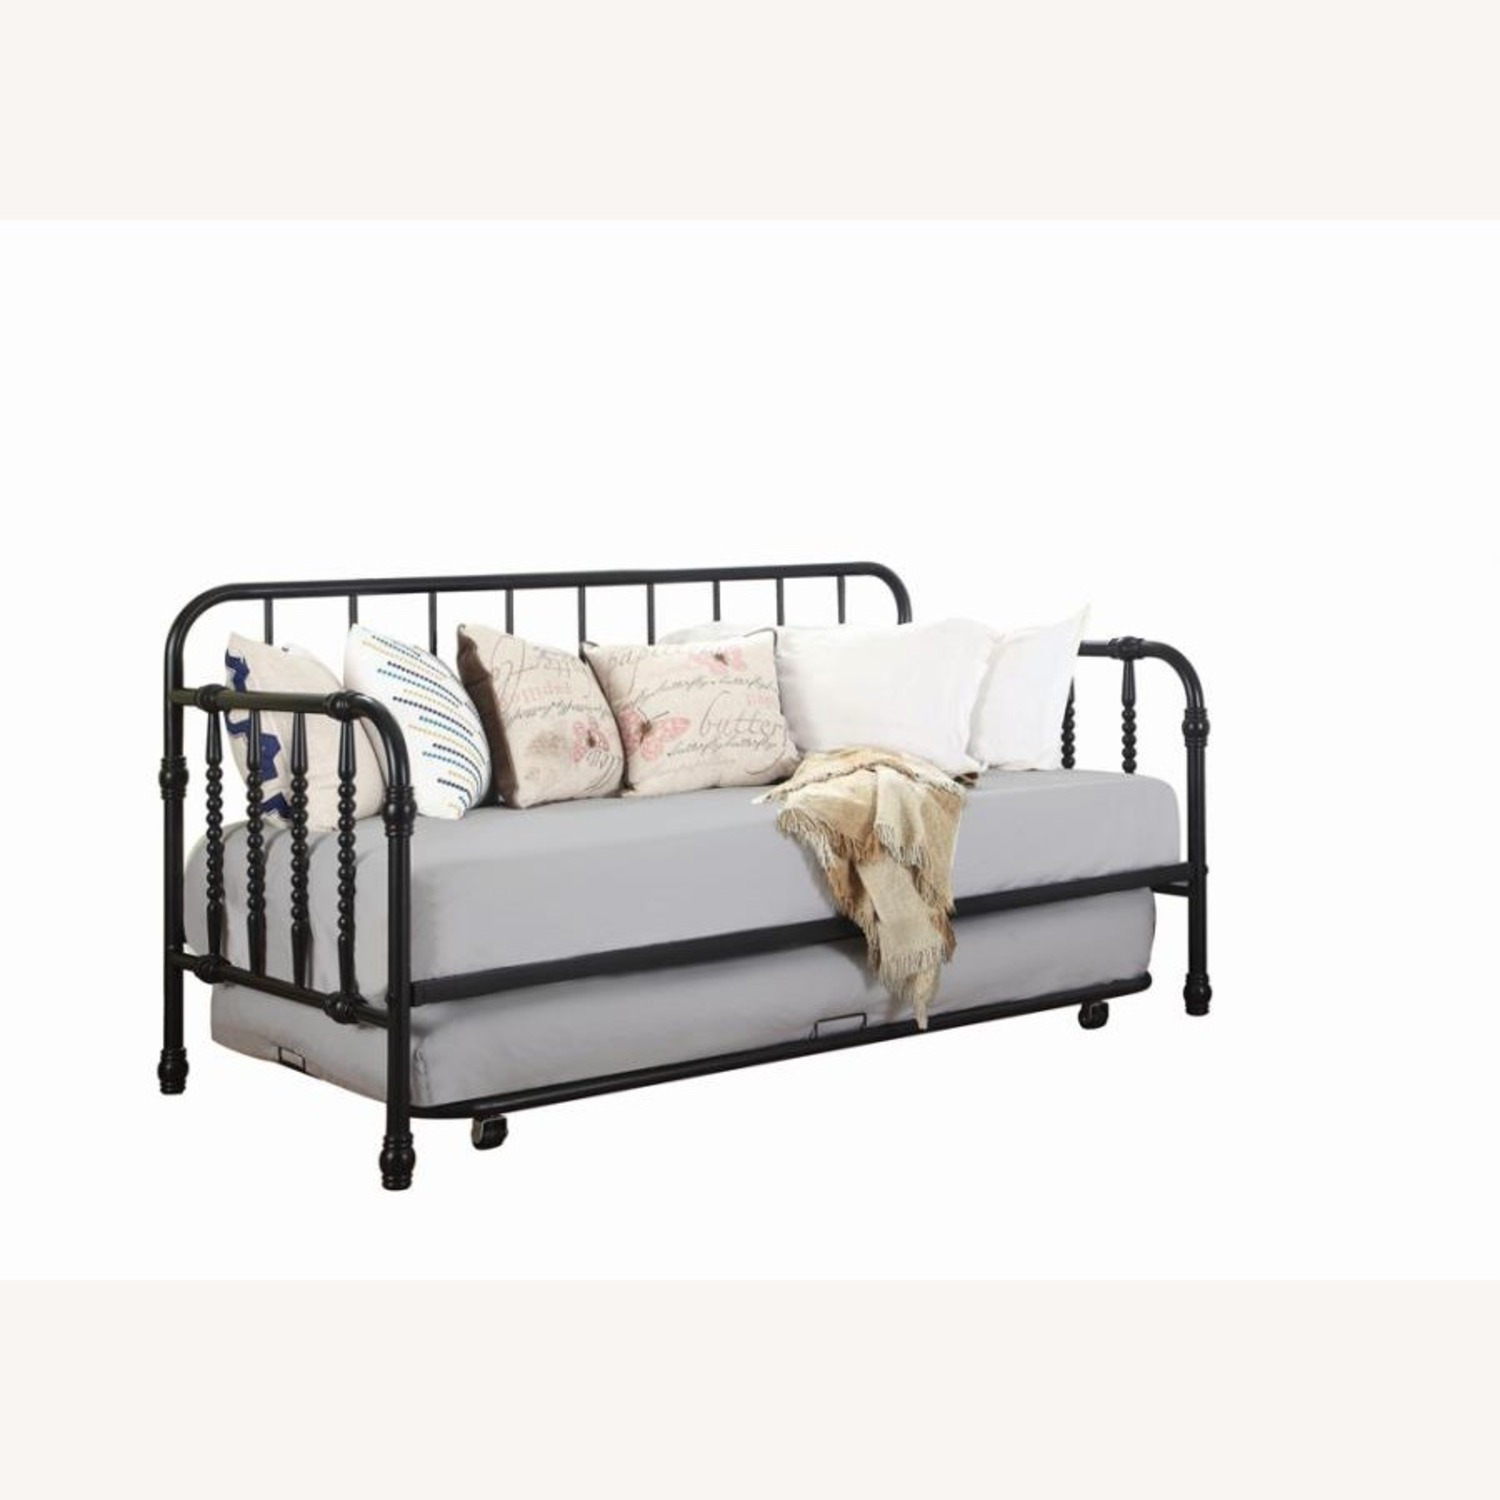 Twin Daybed In Black Metal Finish W/ Trundle - image-0